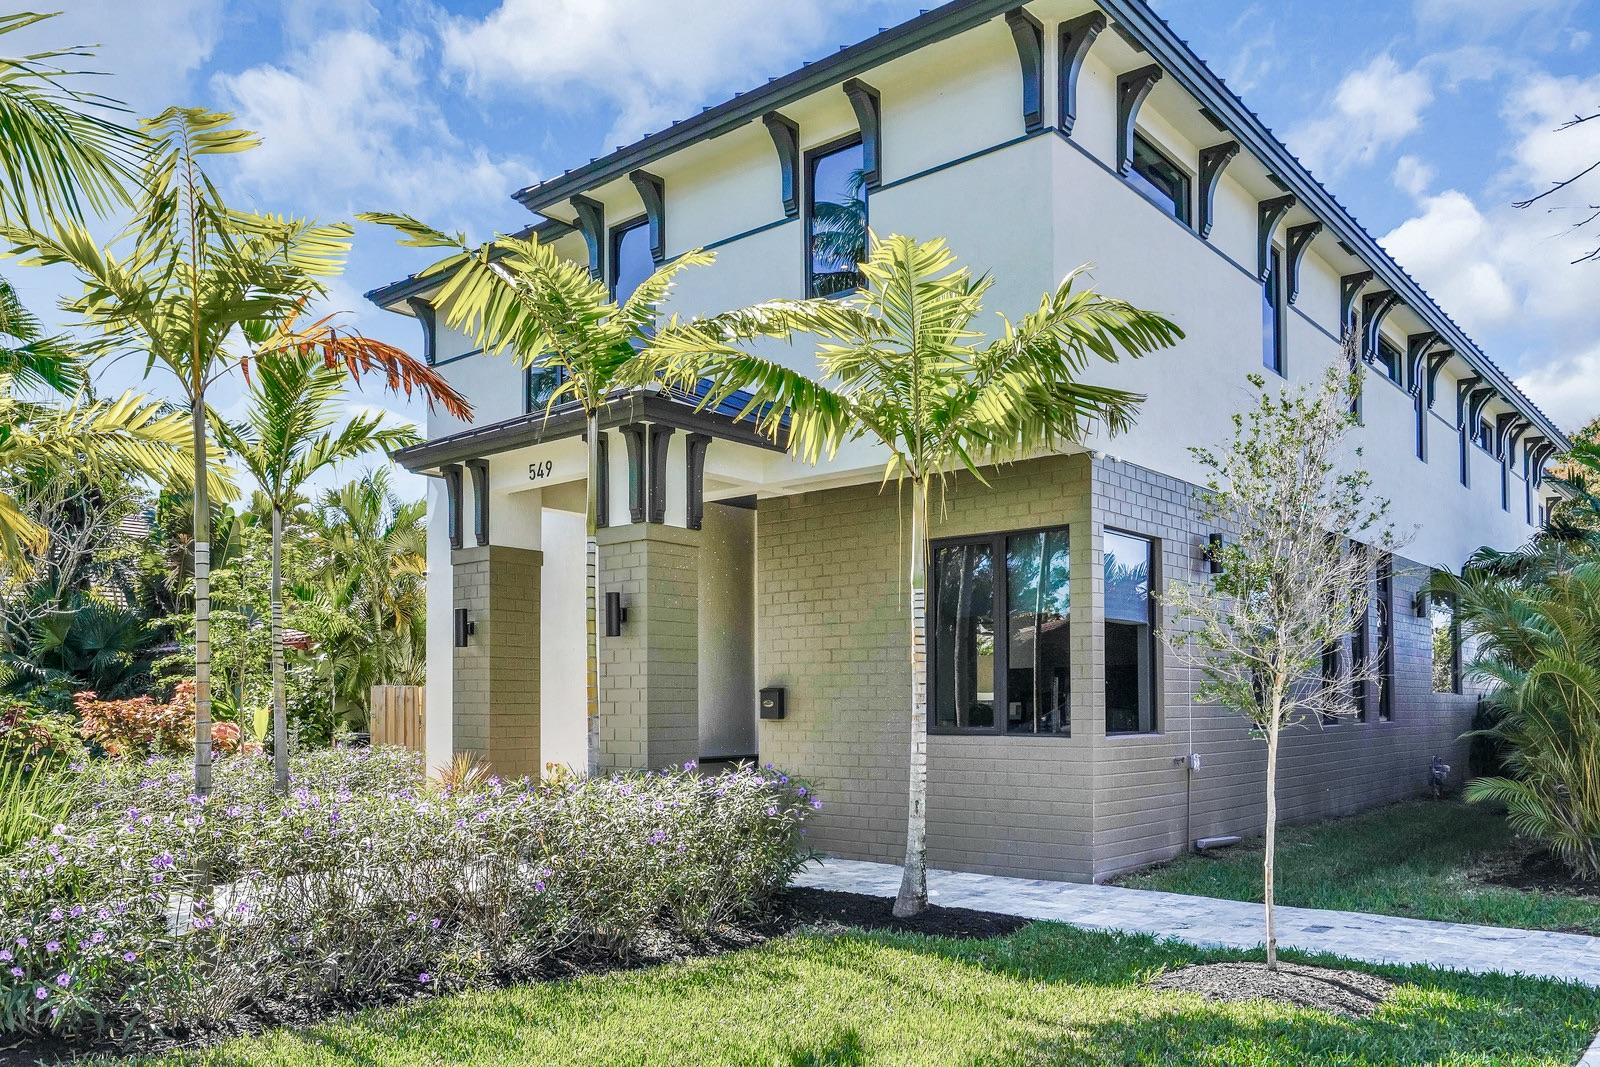 Photo of 549 NE 10th Avenue, Fort Lauderdale, FL 33301